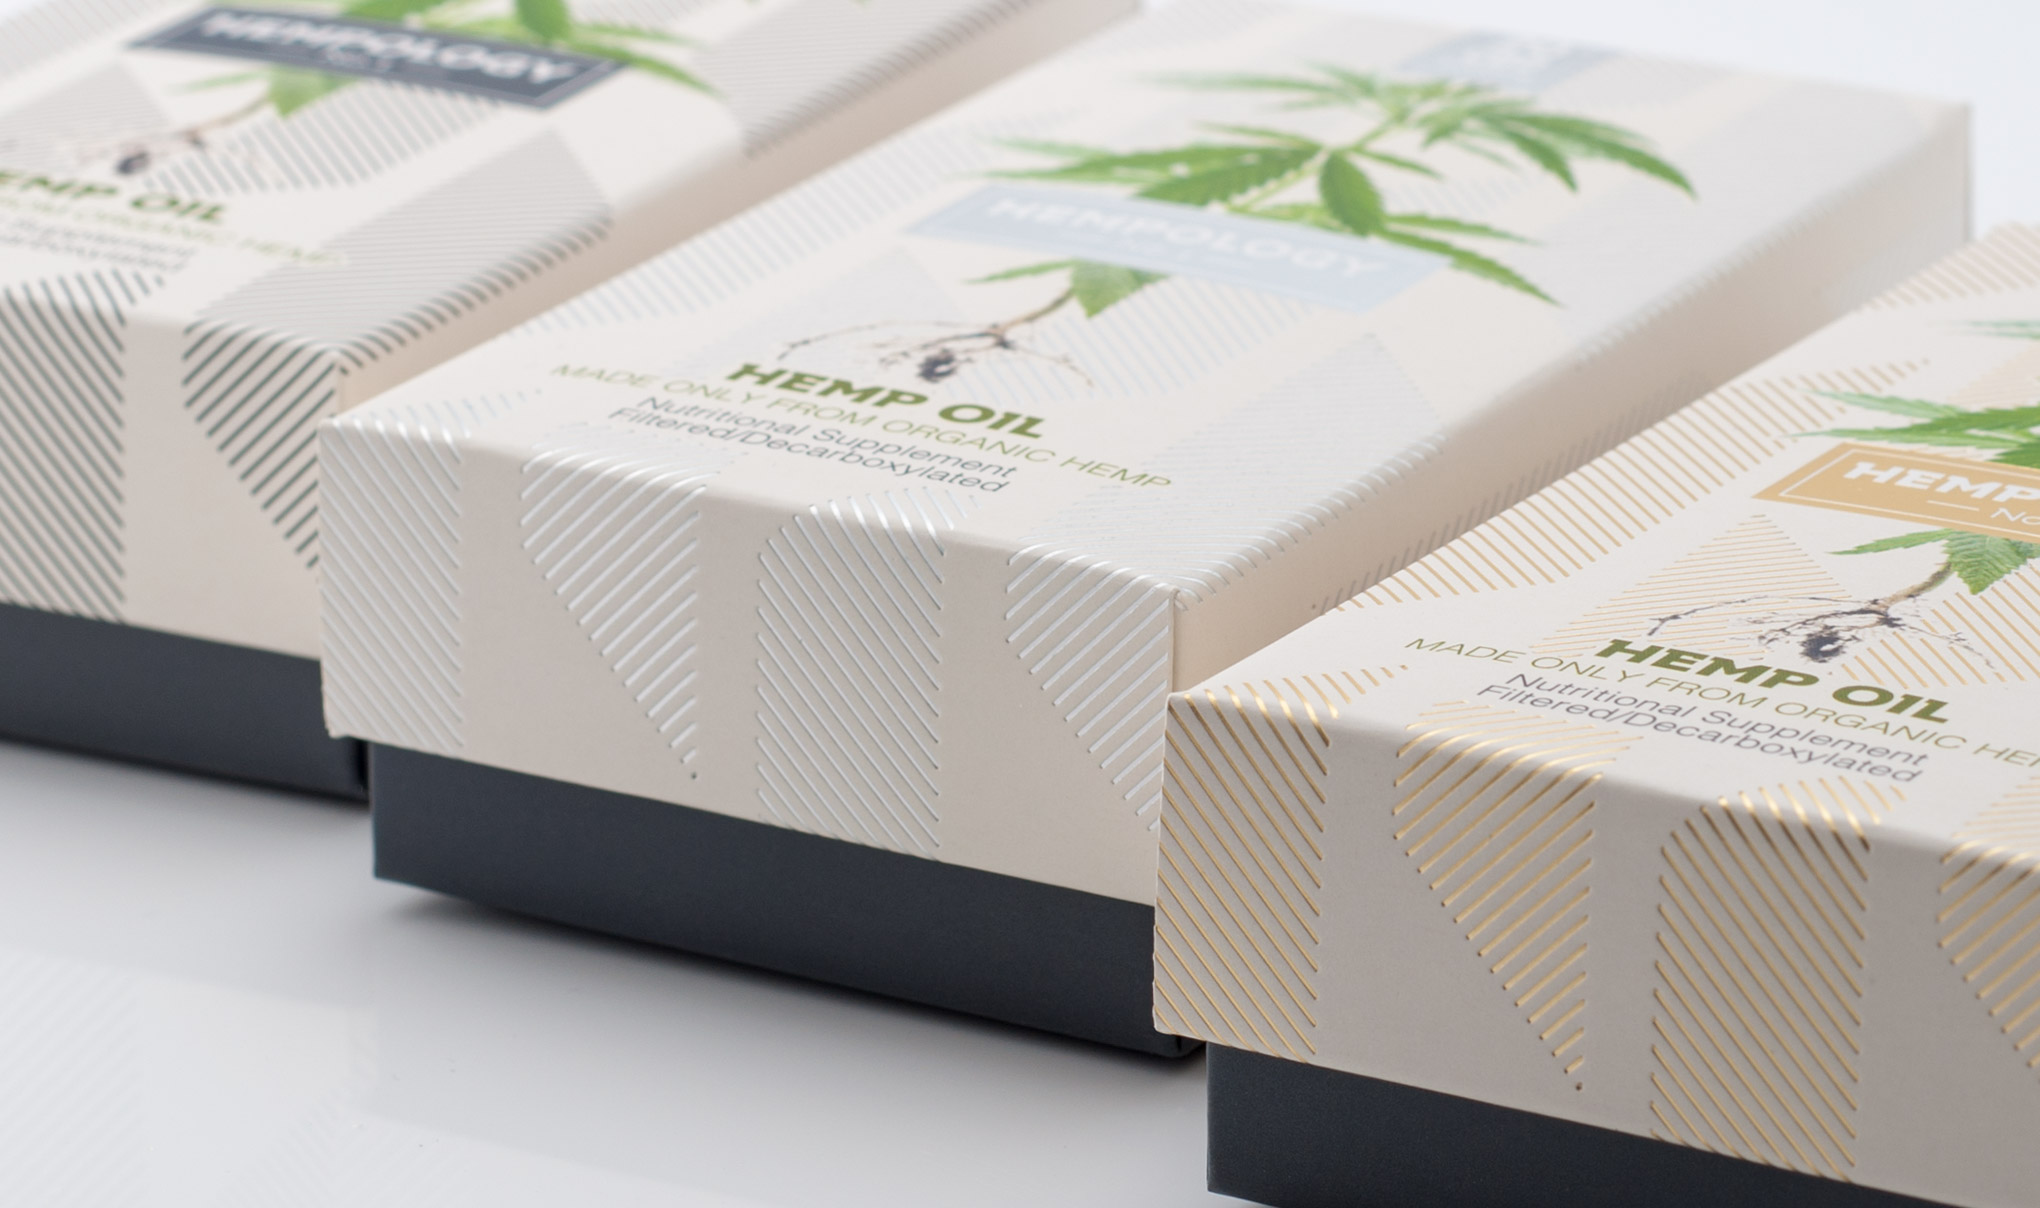 Hempology CBD Oil Packaging Close up Image. Designed by Flipflop Design Agency, Brighton.